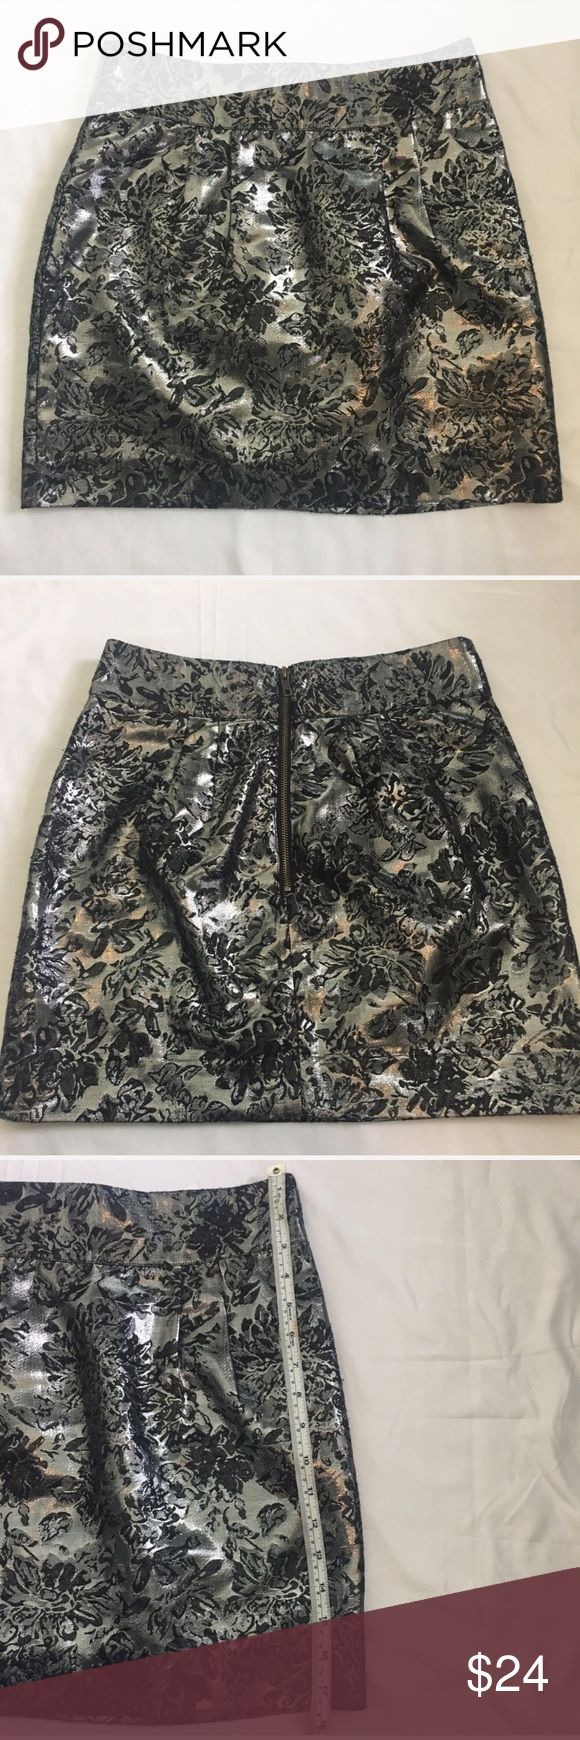 🎀3 For $3o Urban Outfitters Metallic Skirt Size 8 Urban Outfitters Silence +Noise silver metallic skirt. Floral print. Back zipper. Good used condition. No rips or stains. Size 8. Length approximately 17 1/2 inches. 40% cotton/30%polyester/30% acrylic Urban Outfitters Skirts Mini